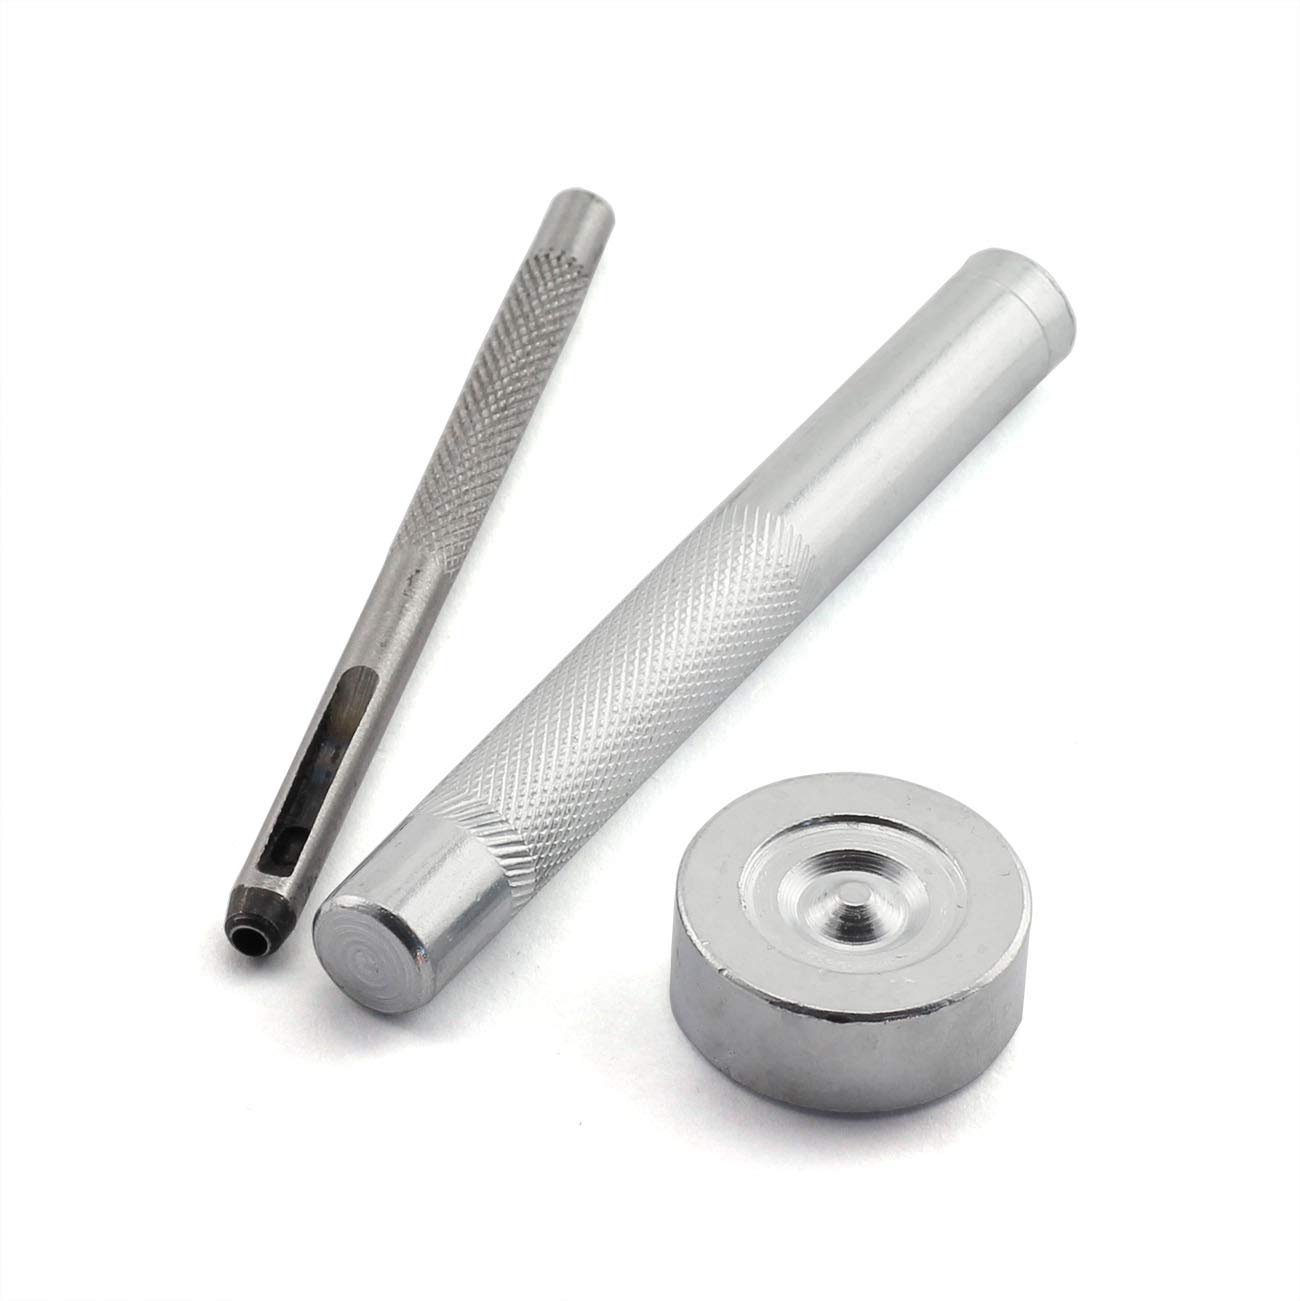 PZRT 100 Sets 6mm Double Cap Rivets with Tools for Leather Craft Repairs DIY Apparel Sewing Fabric Garment Decorations Rivets Silver, Bronze